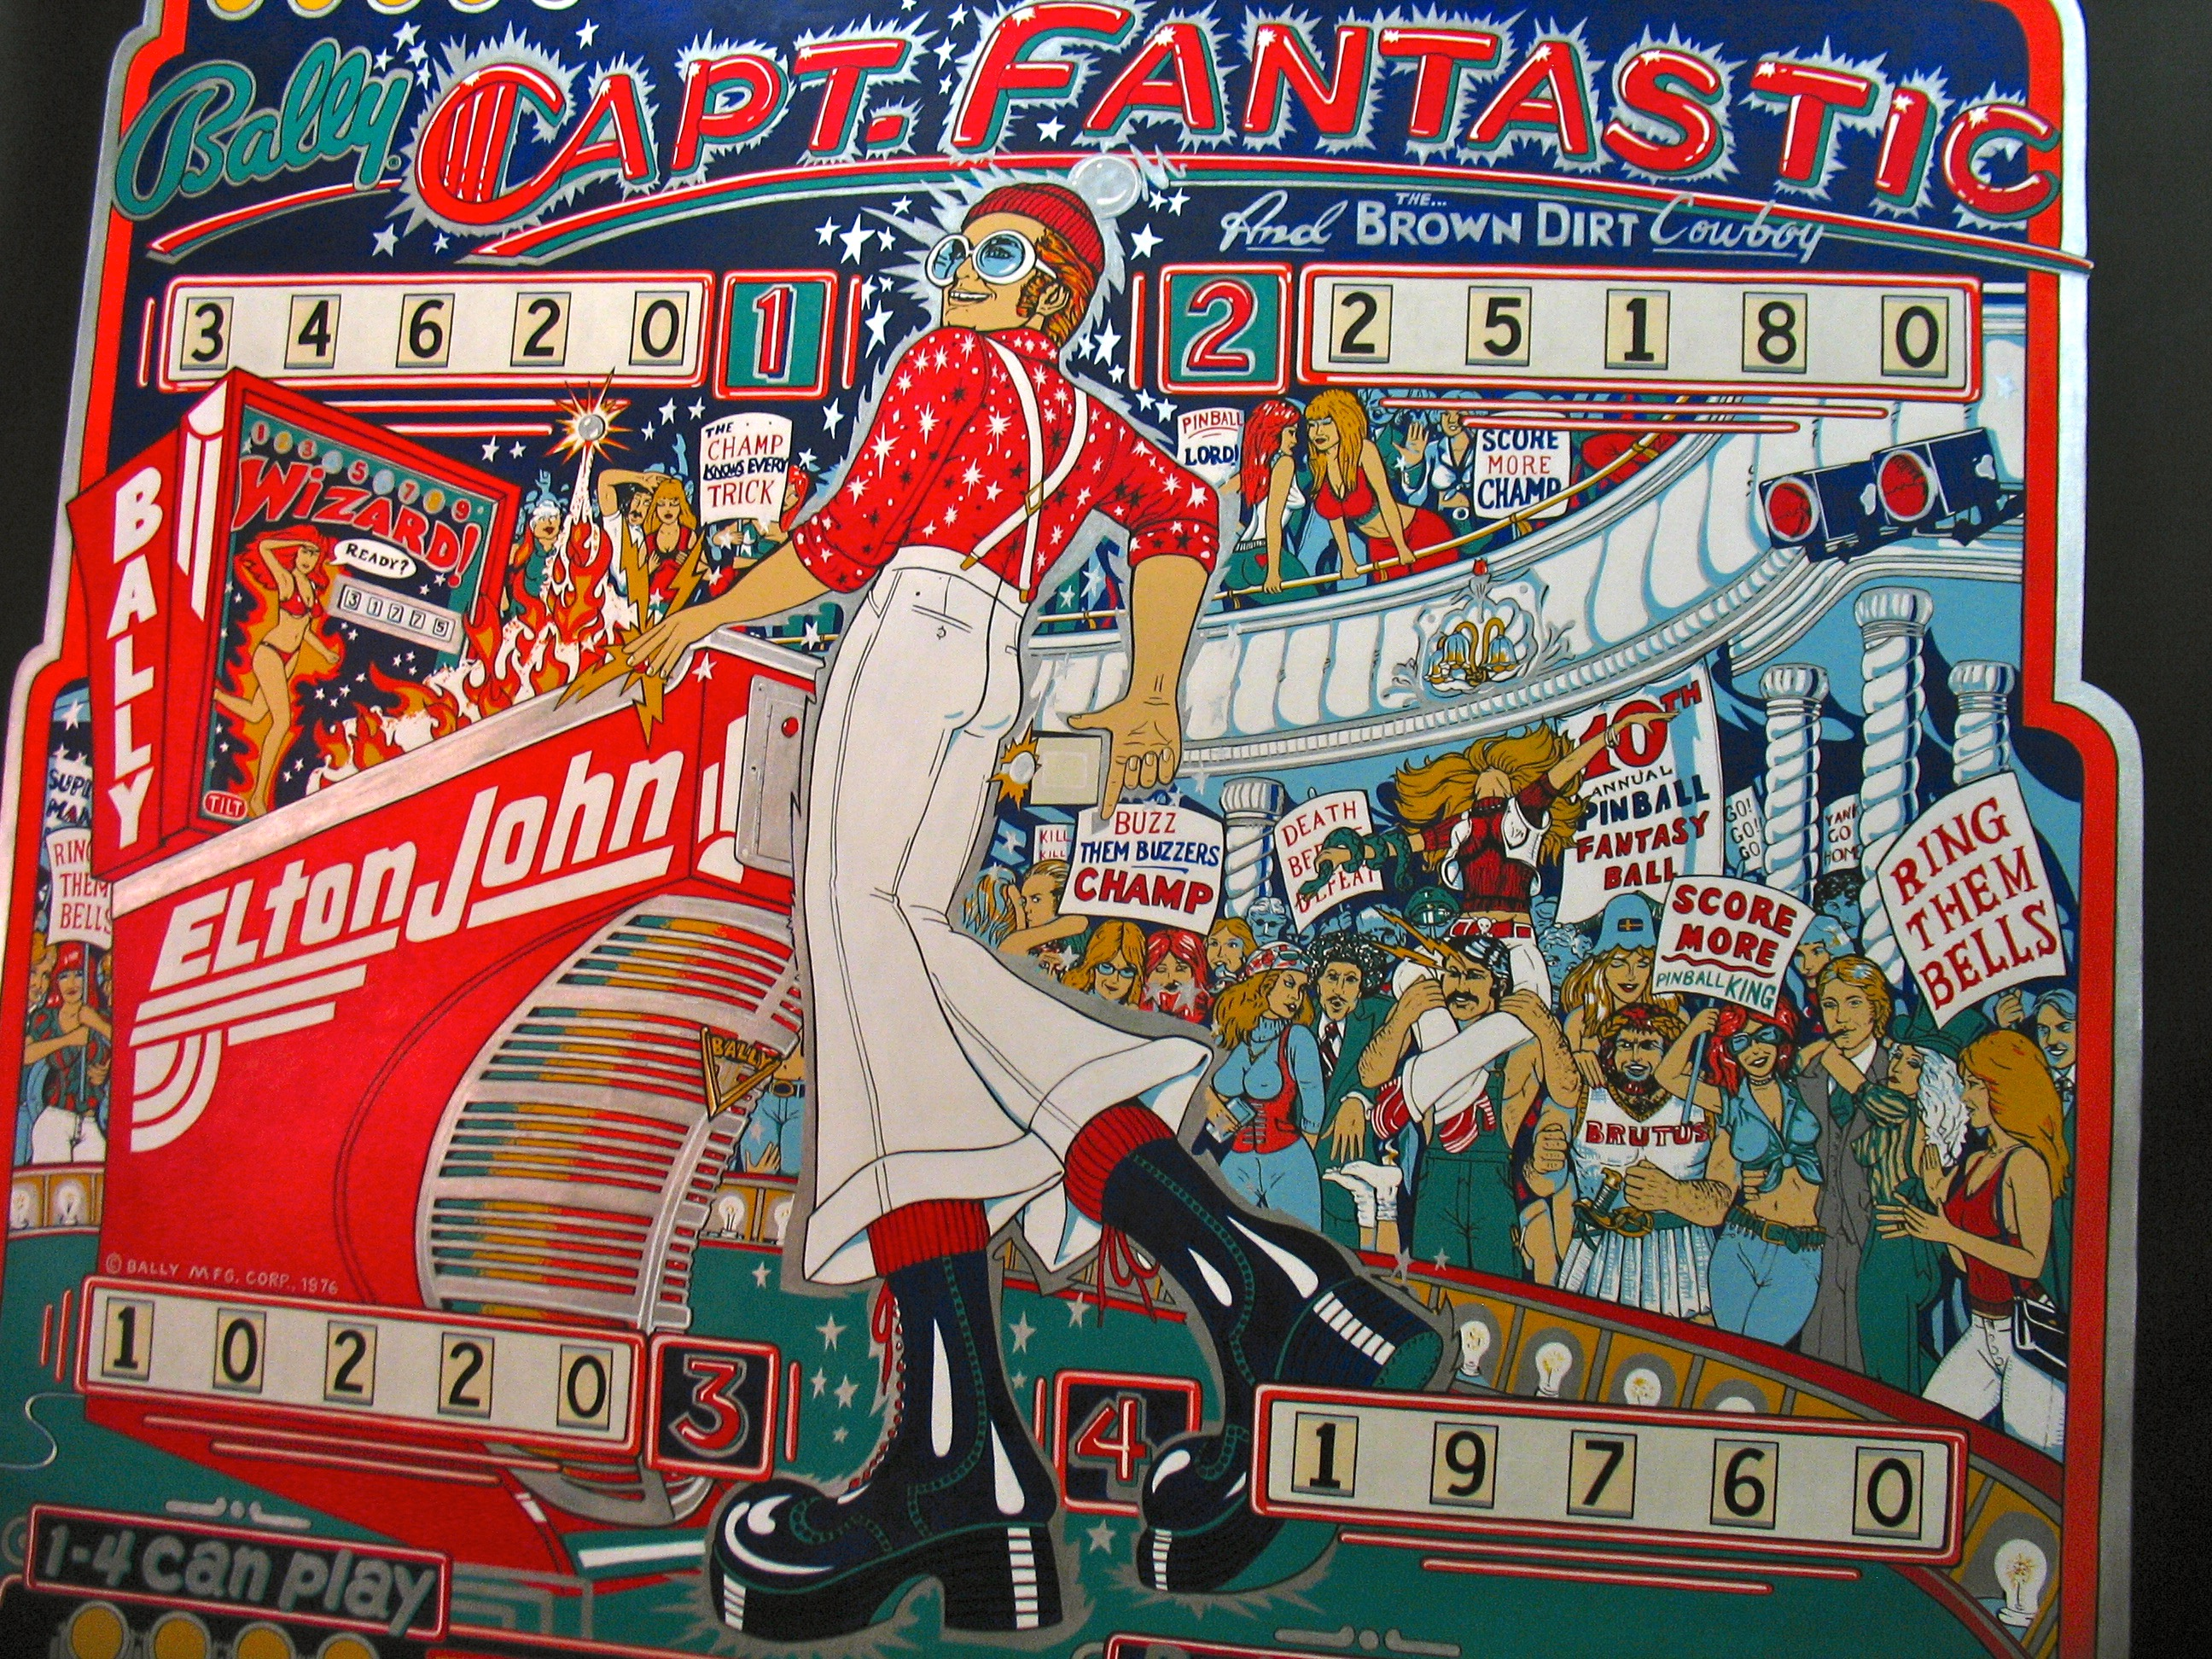 Captain Fantastic Mural